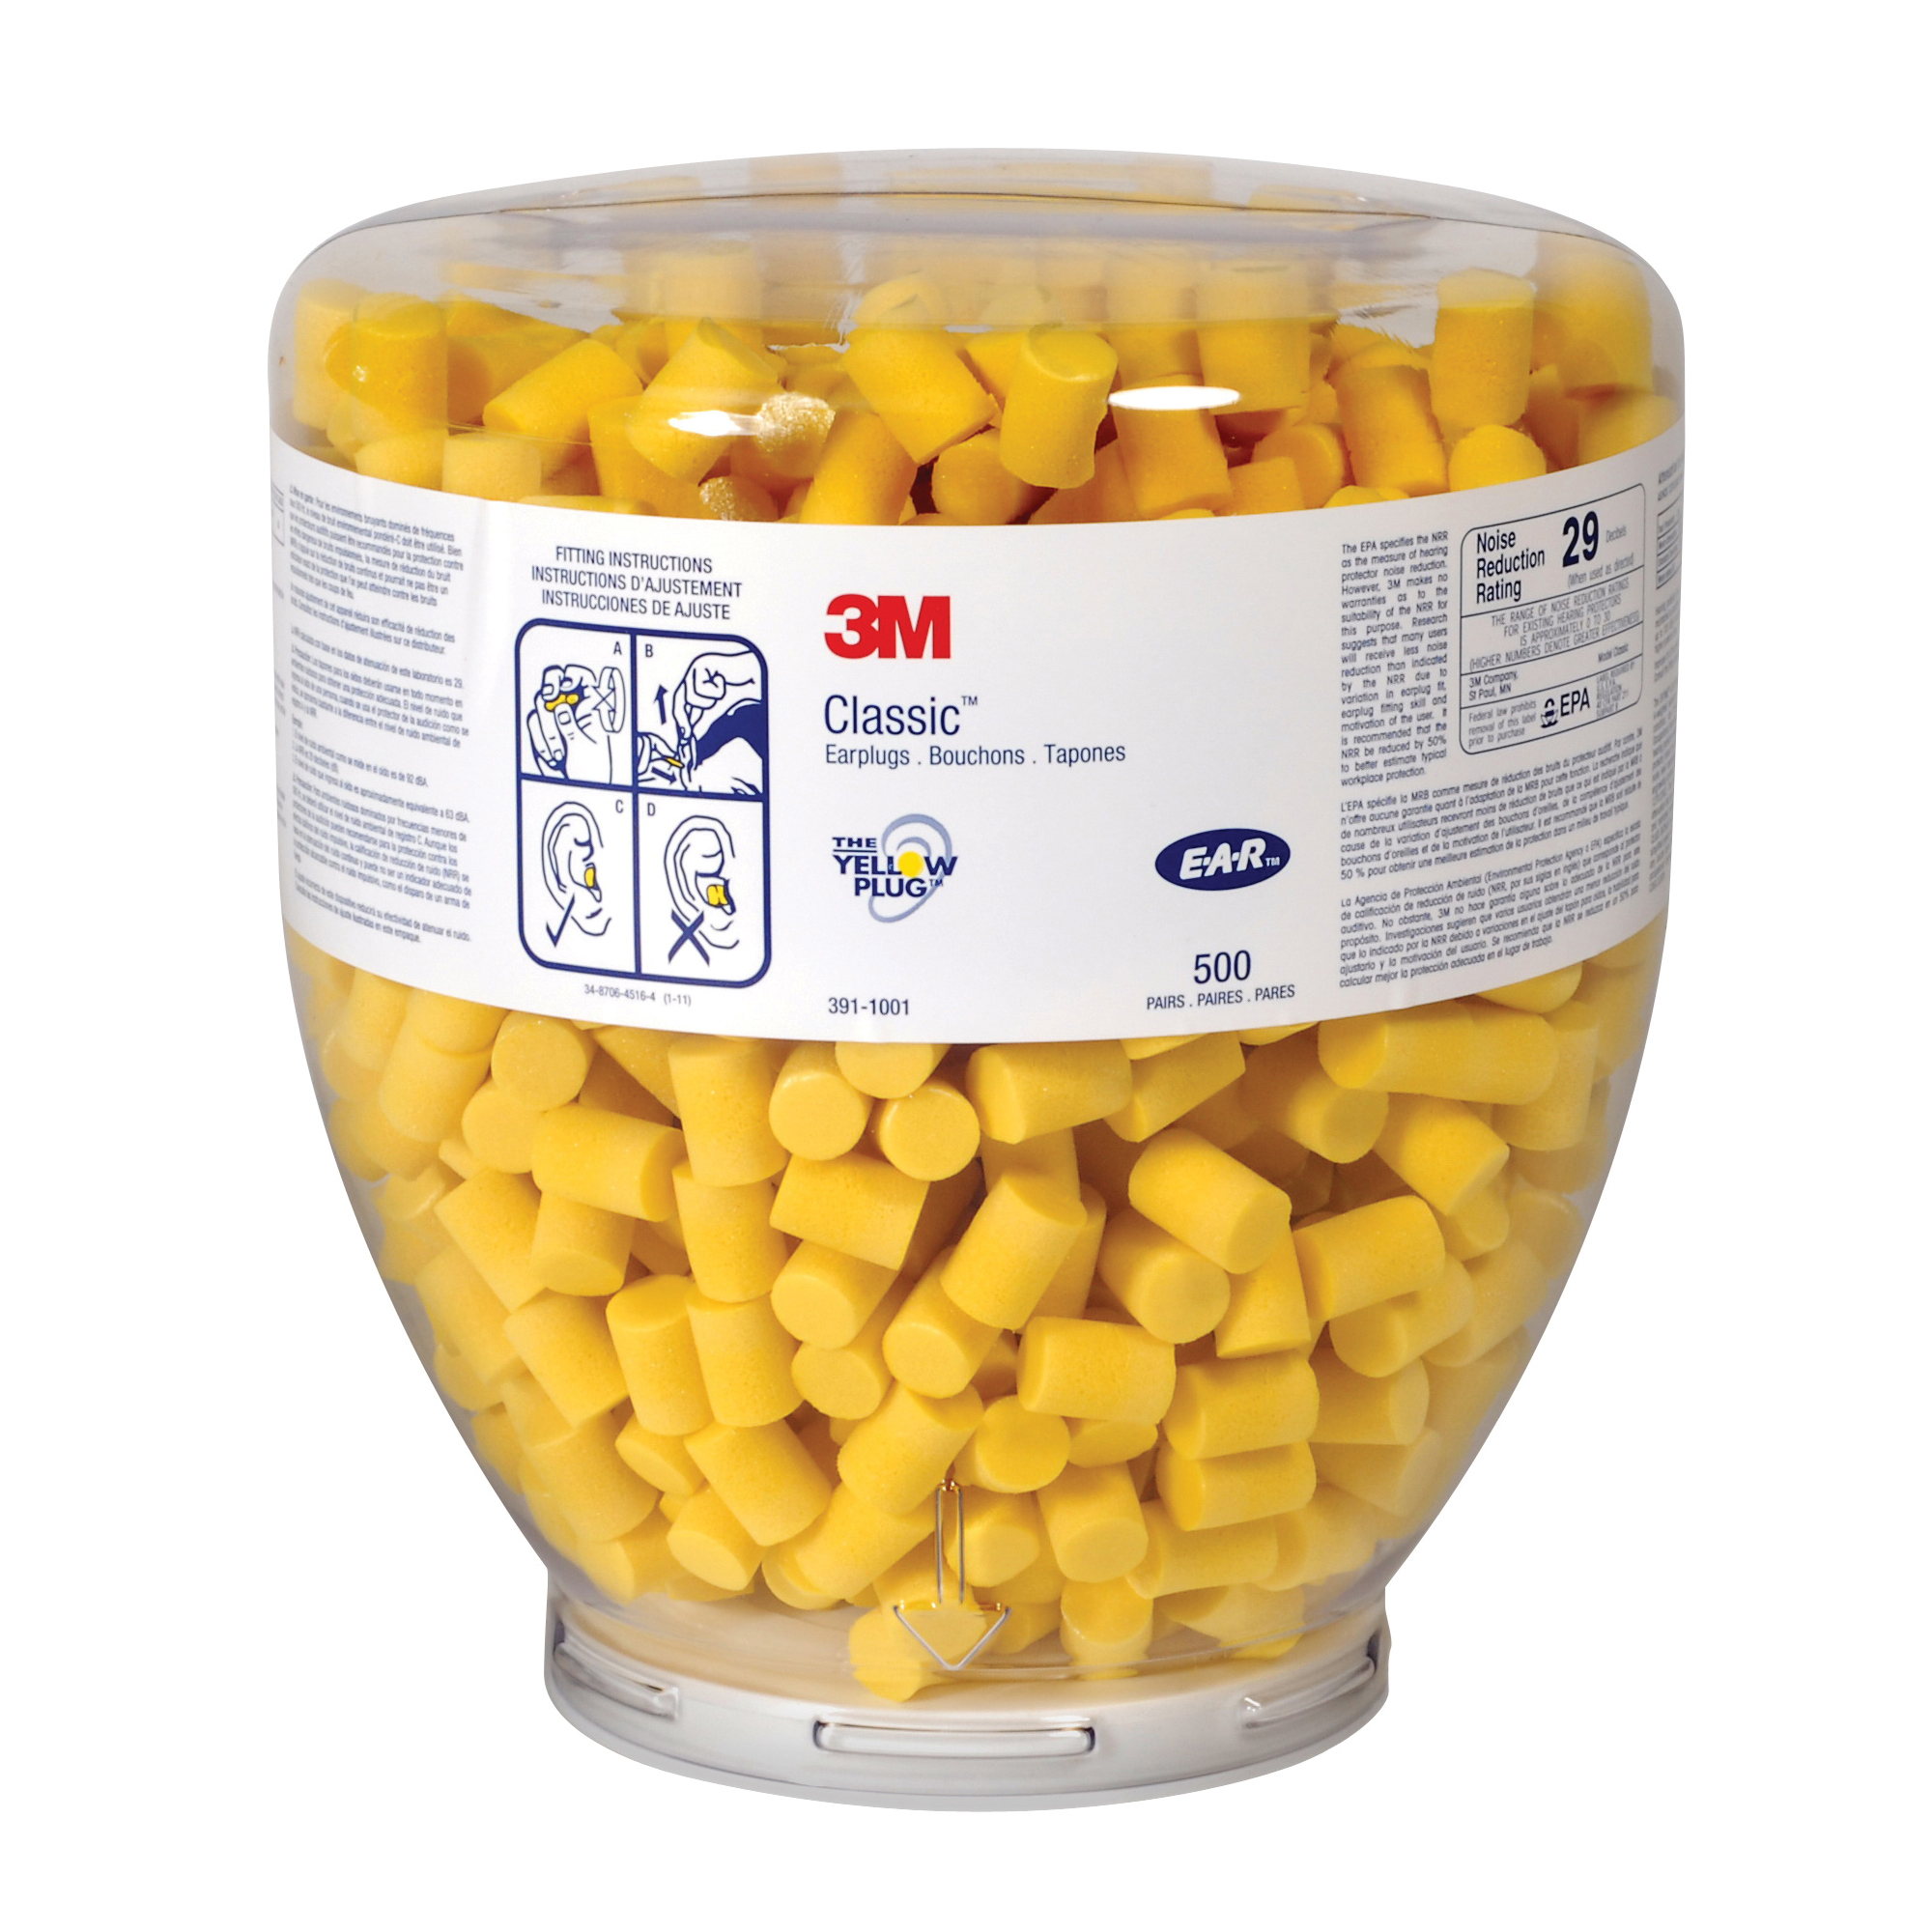 3M™ E-A-R™ 080529-91001 Classic™ One Touch™ Roll Down Earplugs, 29 dB Noise Reduction, Cylindrical Shape, CSA Class AL, Disposable, Uncorded Design